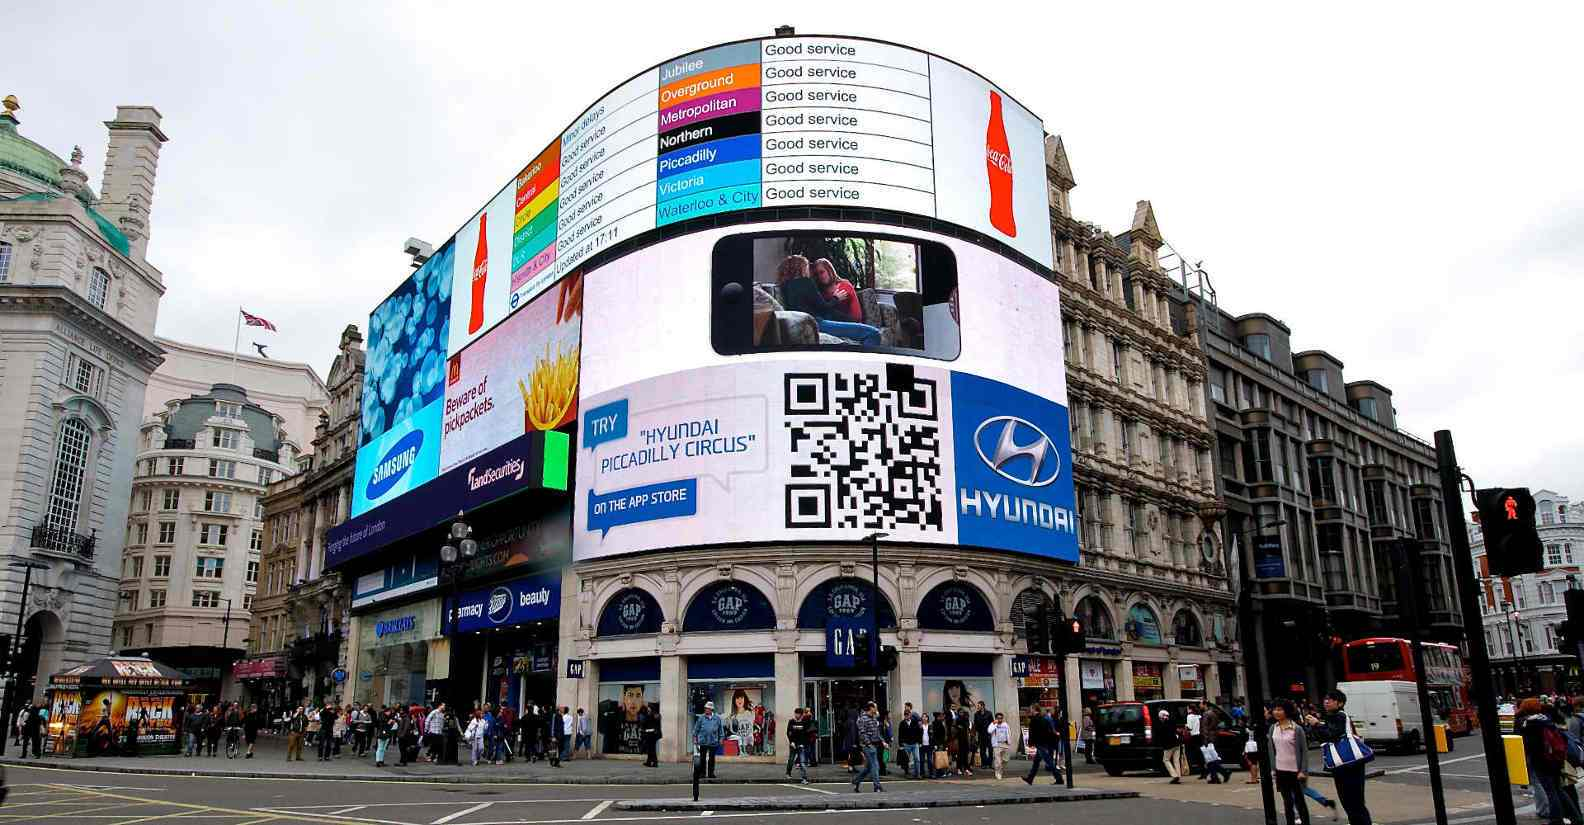 londres-picadilly circus